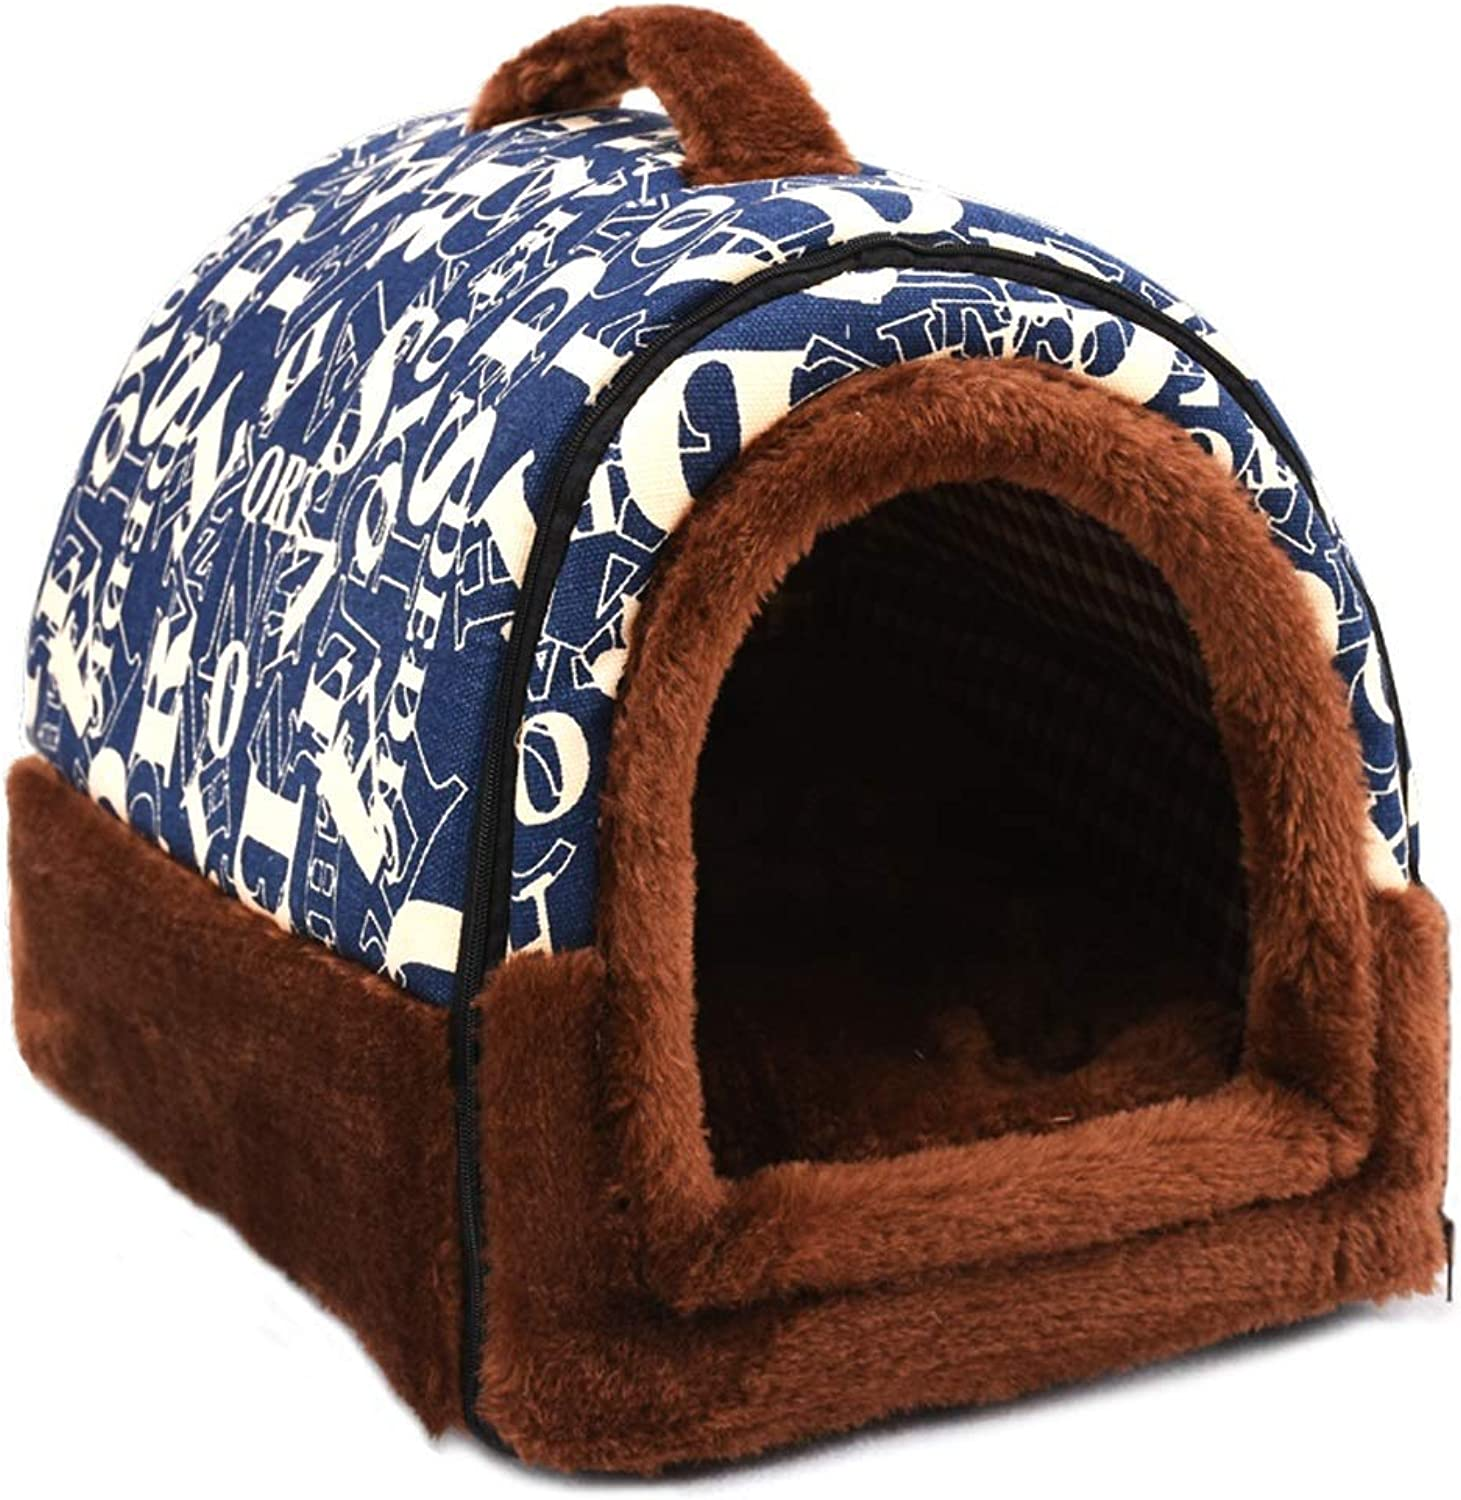 Kennel, 2 In 1 Four Seasons Winter Warm Small DOG Kennel Removable Washable Pet Supplies Cat Litter Cat House (color   A, Size   S)